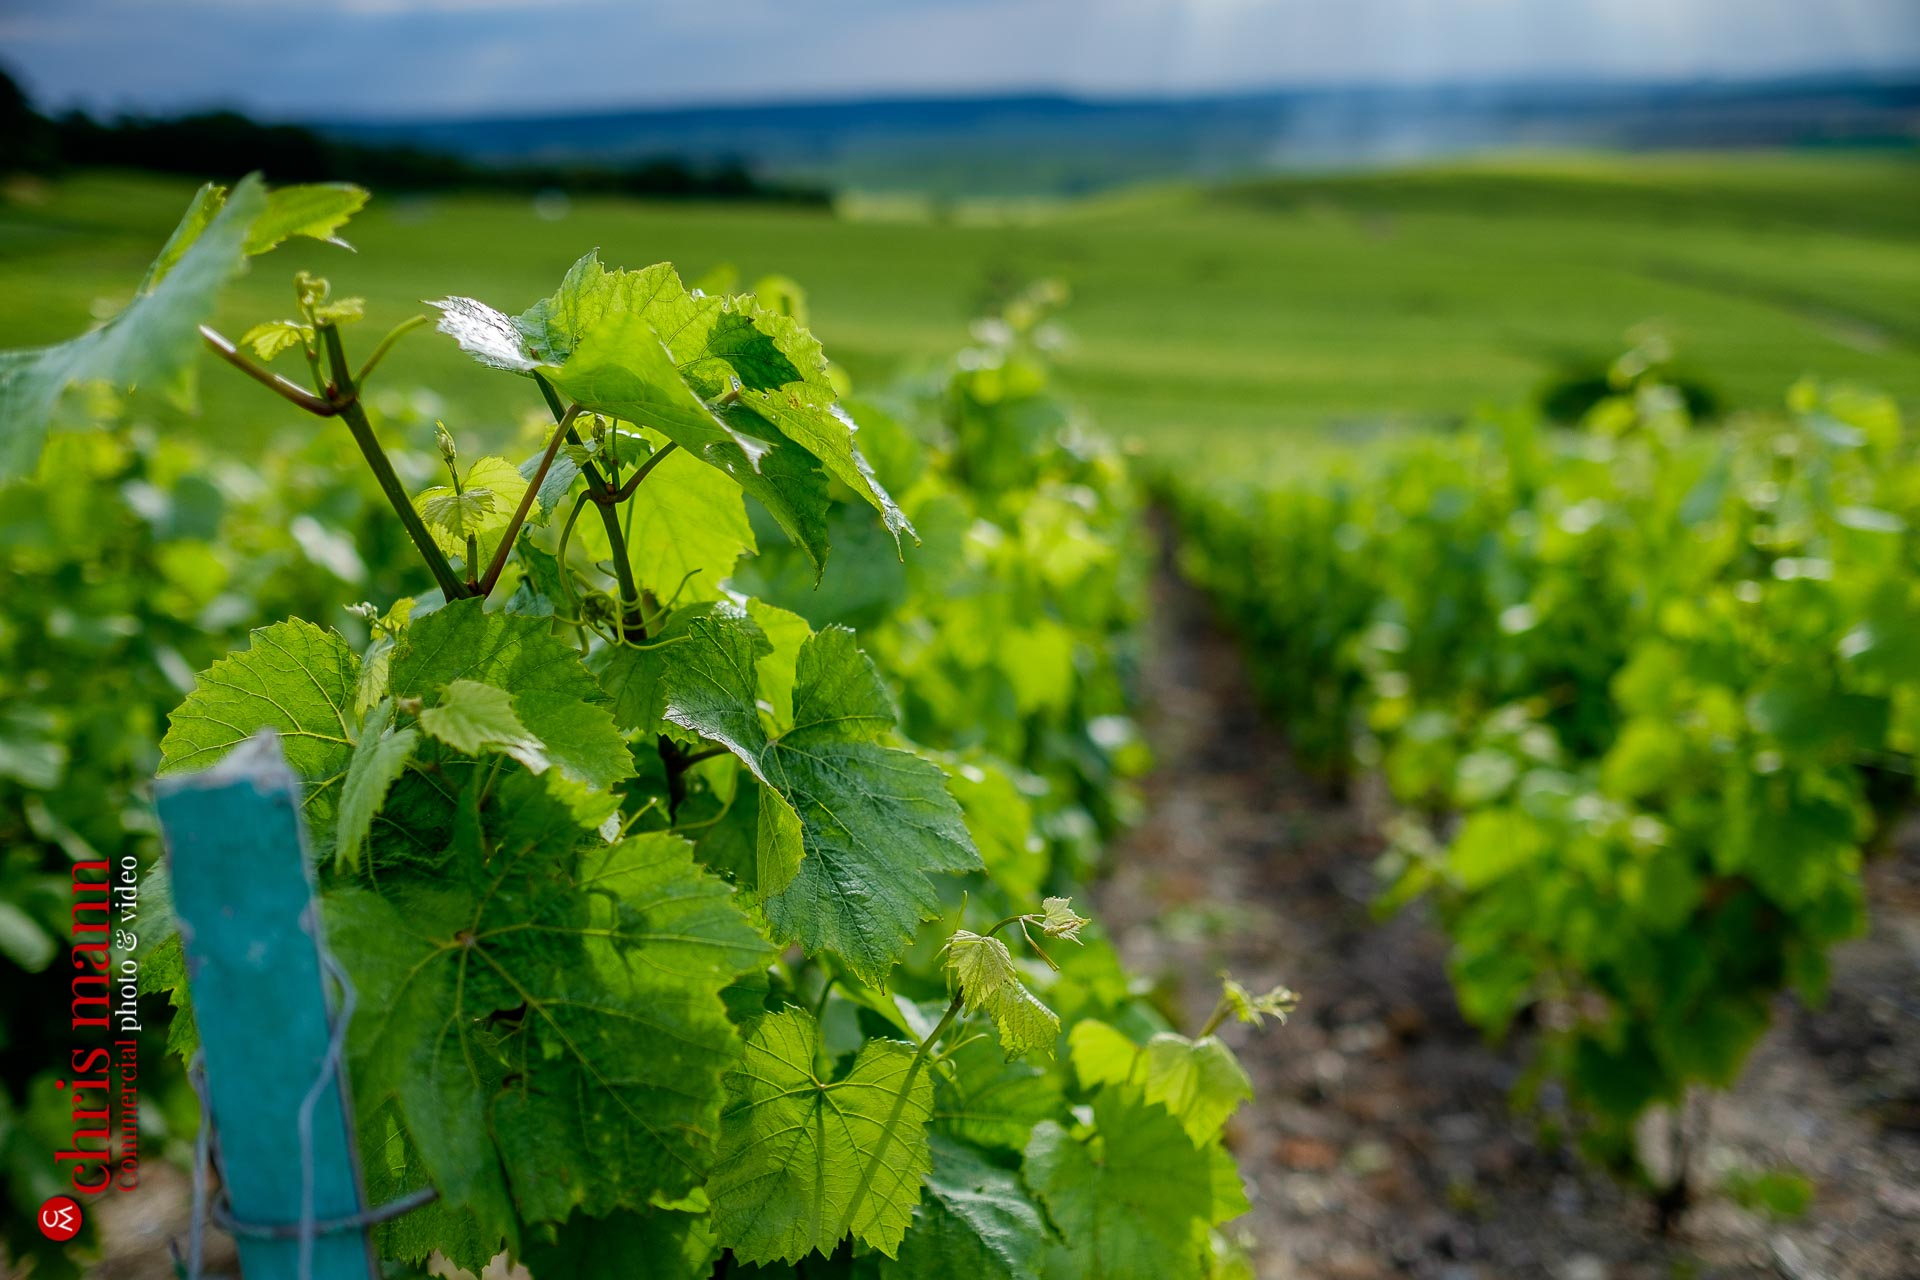 close-up of vines in Champagne vineyards near Reims Picardy France